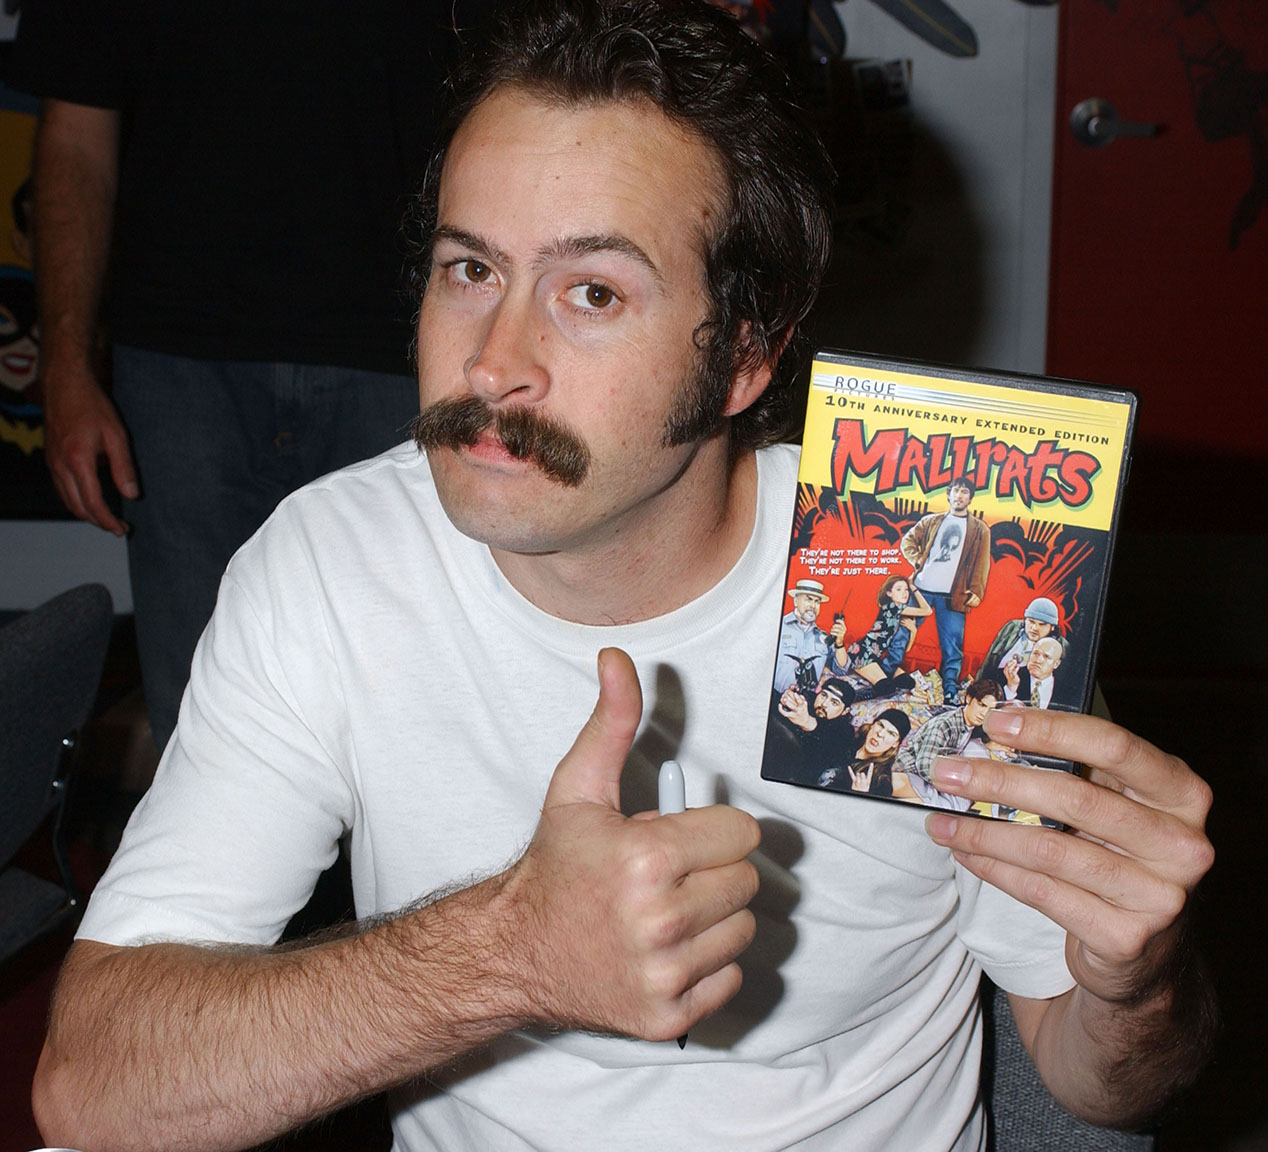 In 1995, professional skateboarder Jason Lee acted in his first major motion picture: Kevin Smith's Mallrats. The film, which takes place in New Jersey, was filmed in Eden Prairie, Minnesota, and helped launched Lee into a successful acting career. These days, Eden Prairie Center, where the movie was filmed, still stands, and fans of Lee's acting and skating often make the pilgrimage to the filming location to pay homage. And once X Games Minneapolis drops in July, the area can claim one more piece of skateboarding heritage.